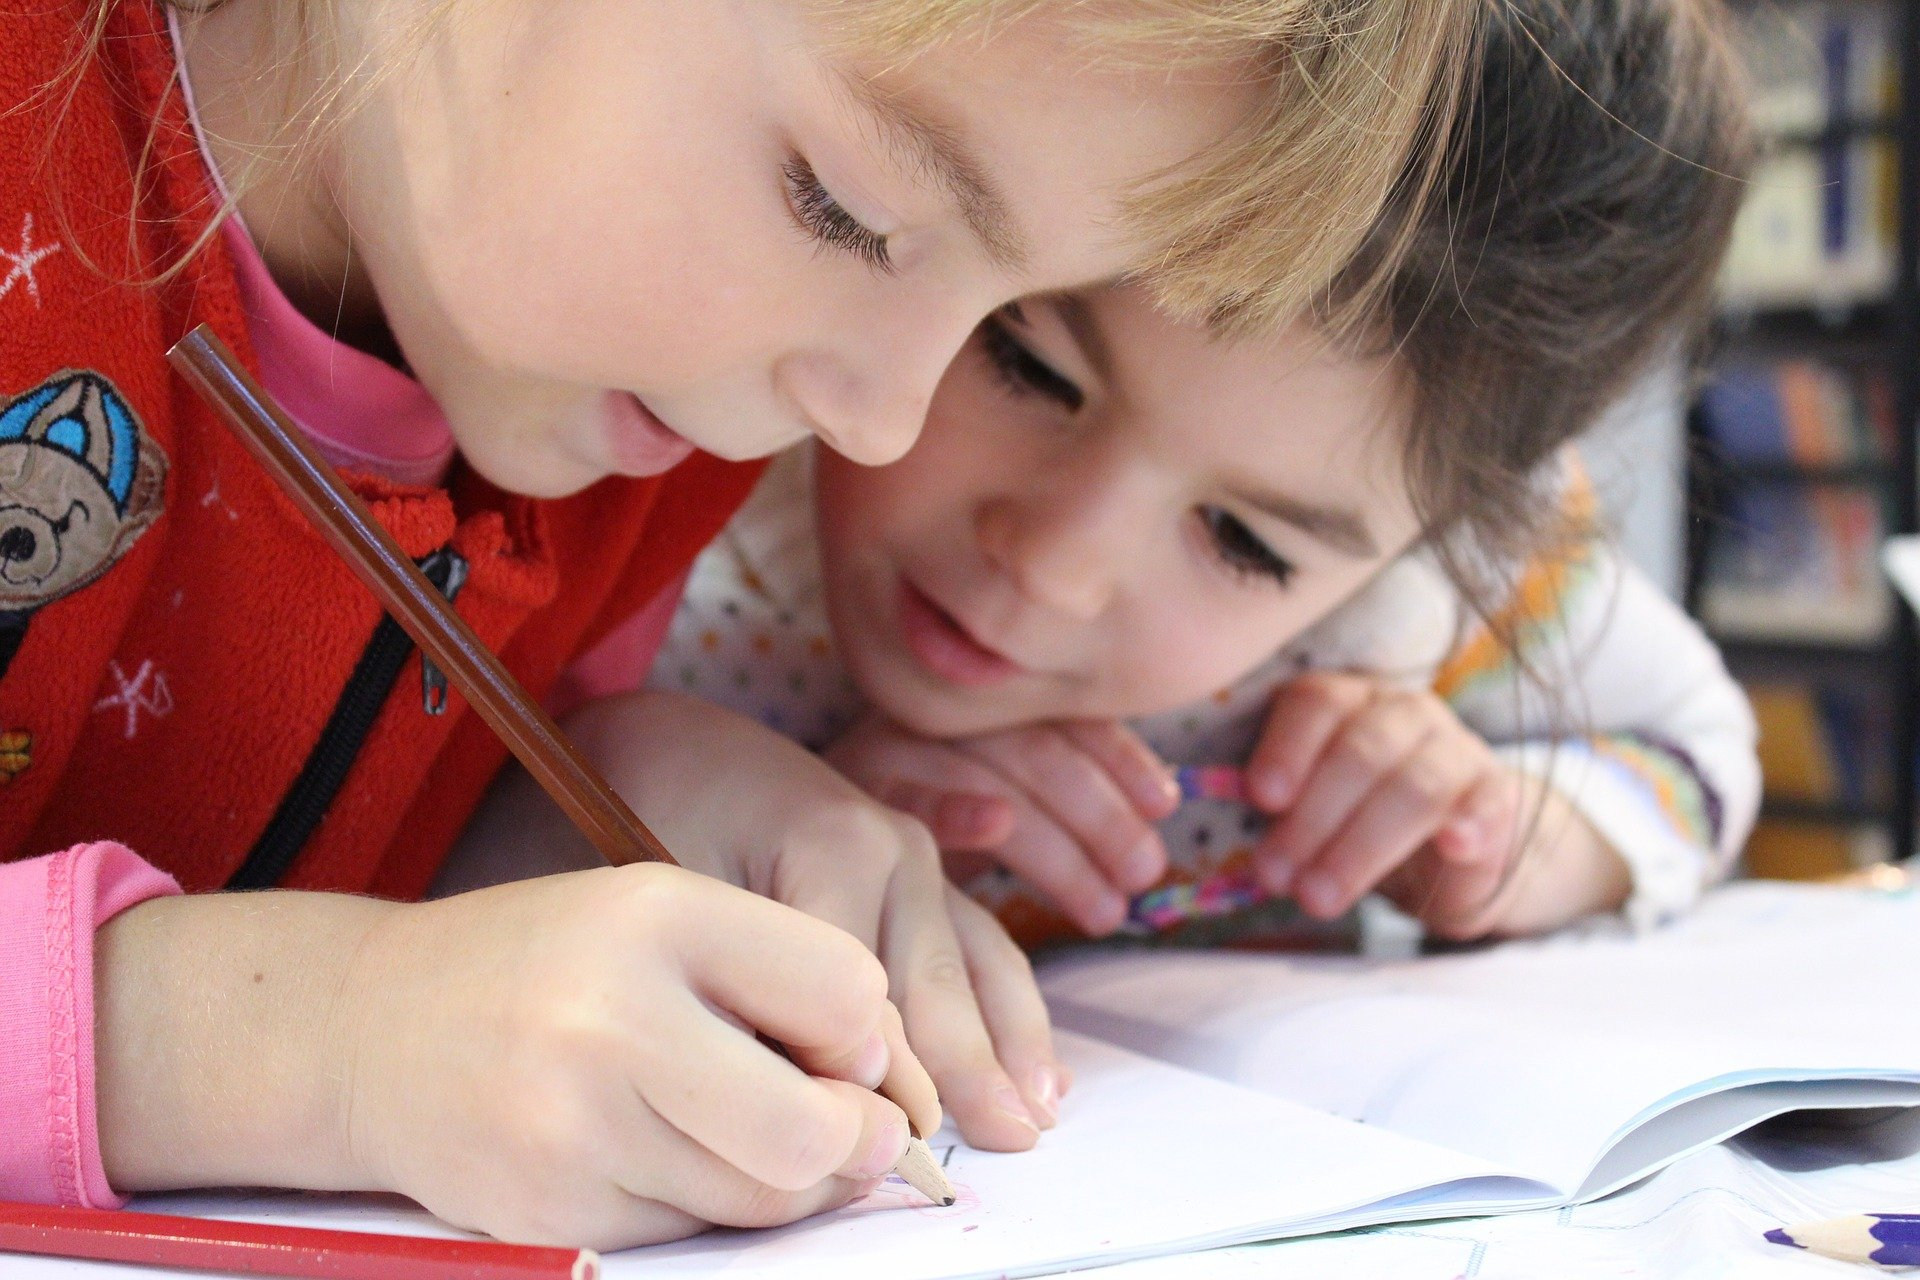 AT&T Supports Summer Learning to Narrow the Homework Gap